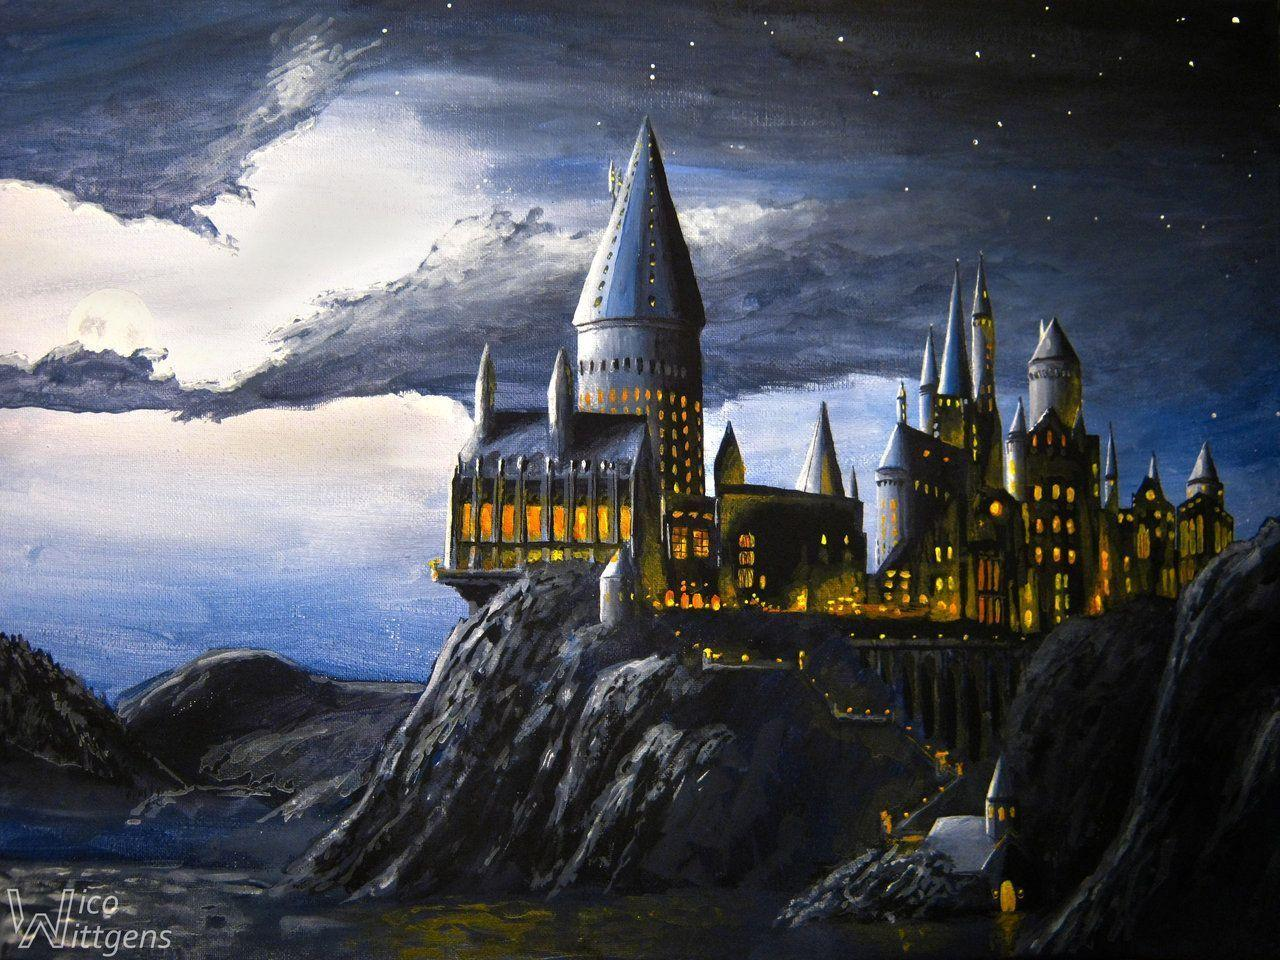 Hogwarts Castle Night Wallpapers Image & Pictures